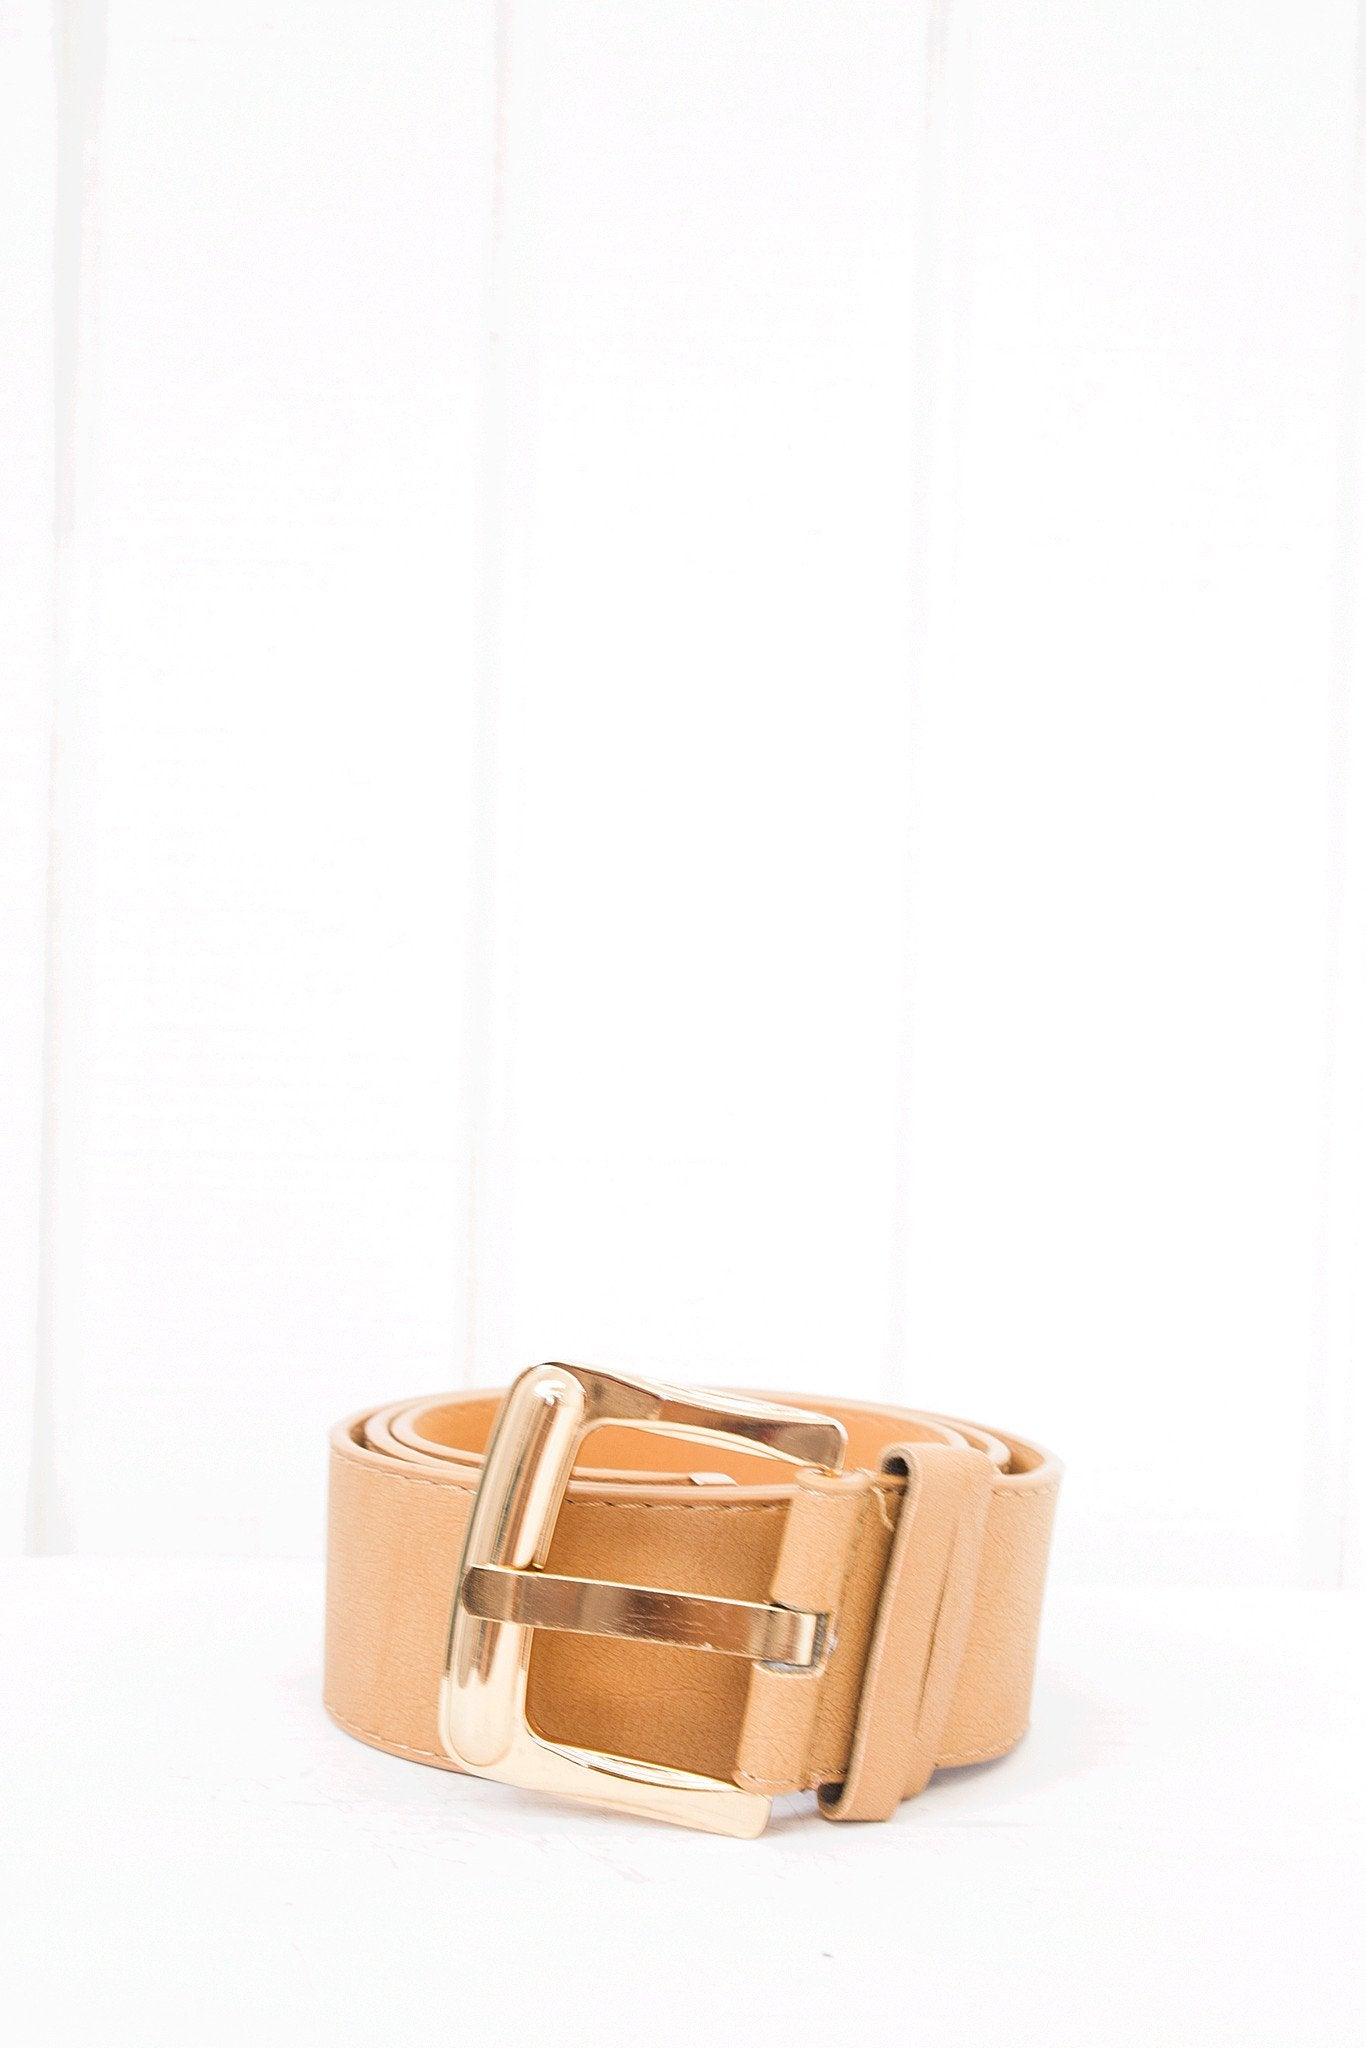 Jayka Leather Belt - Camel